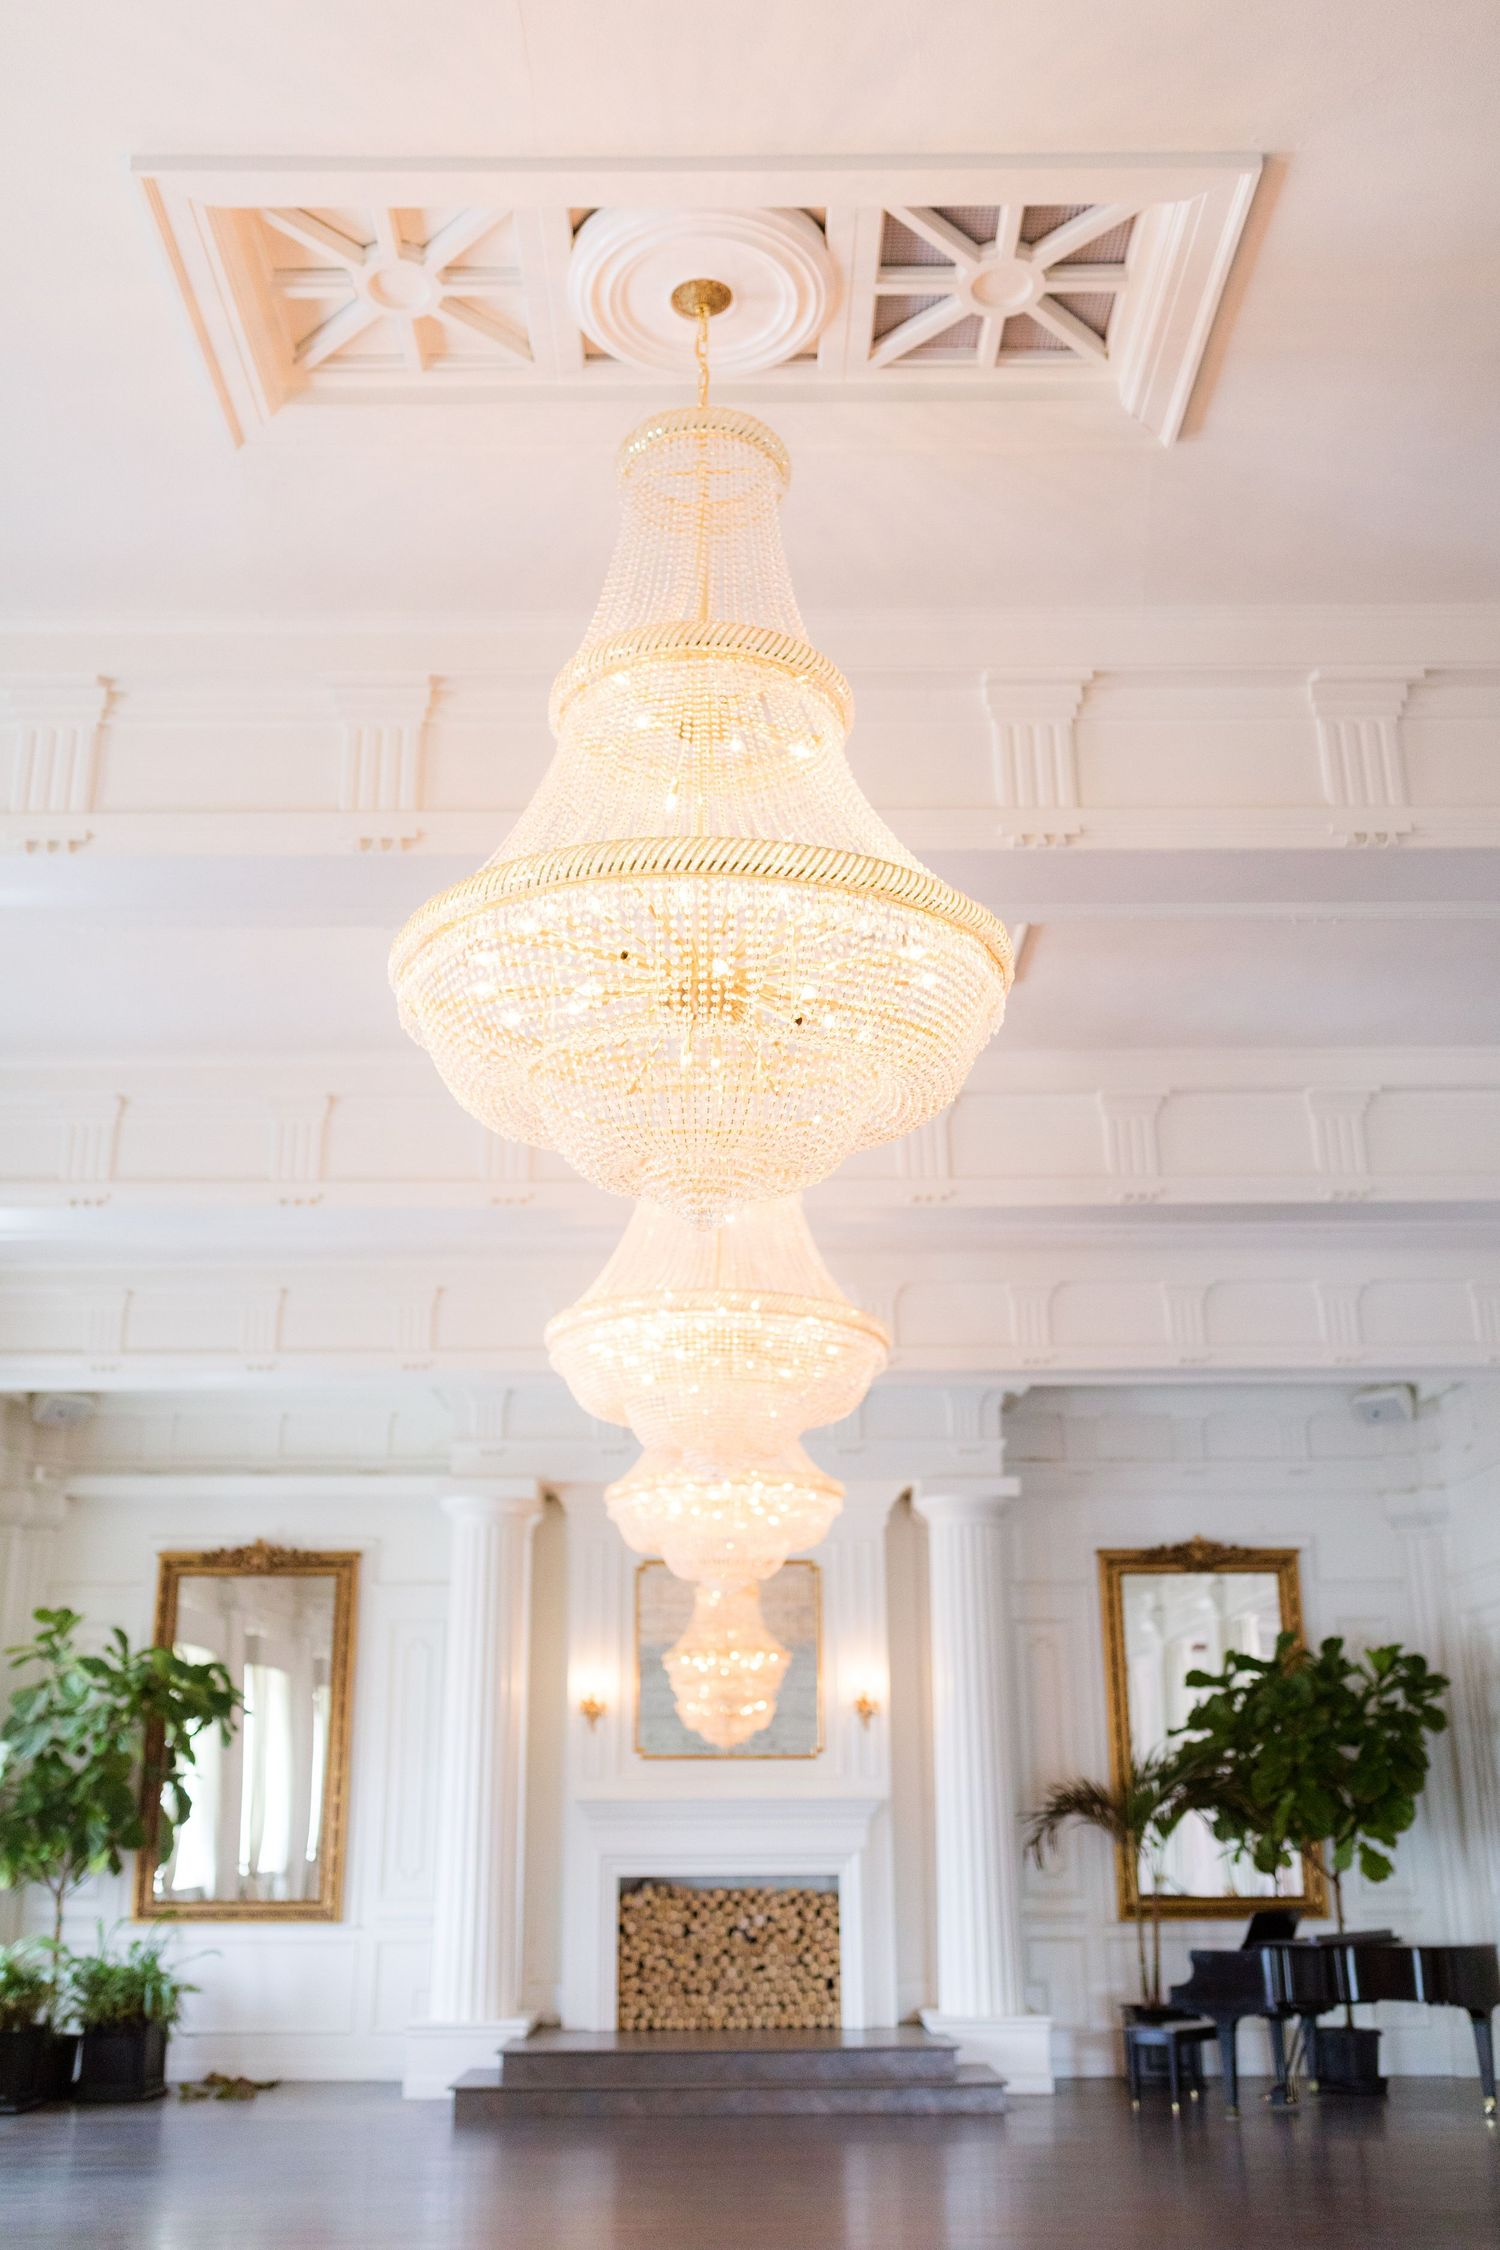 Sparkling chandeliers in the ballroom at The Mason Dallas.